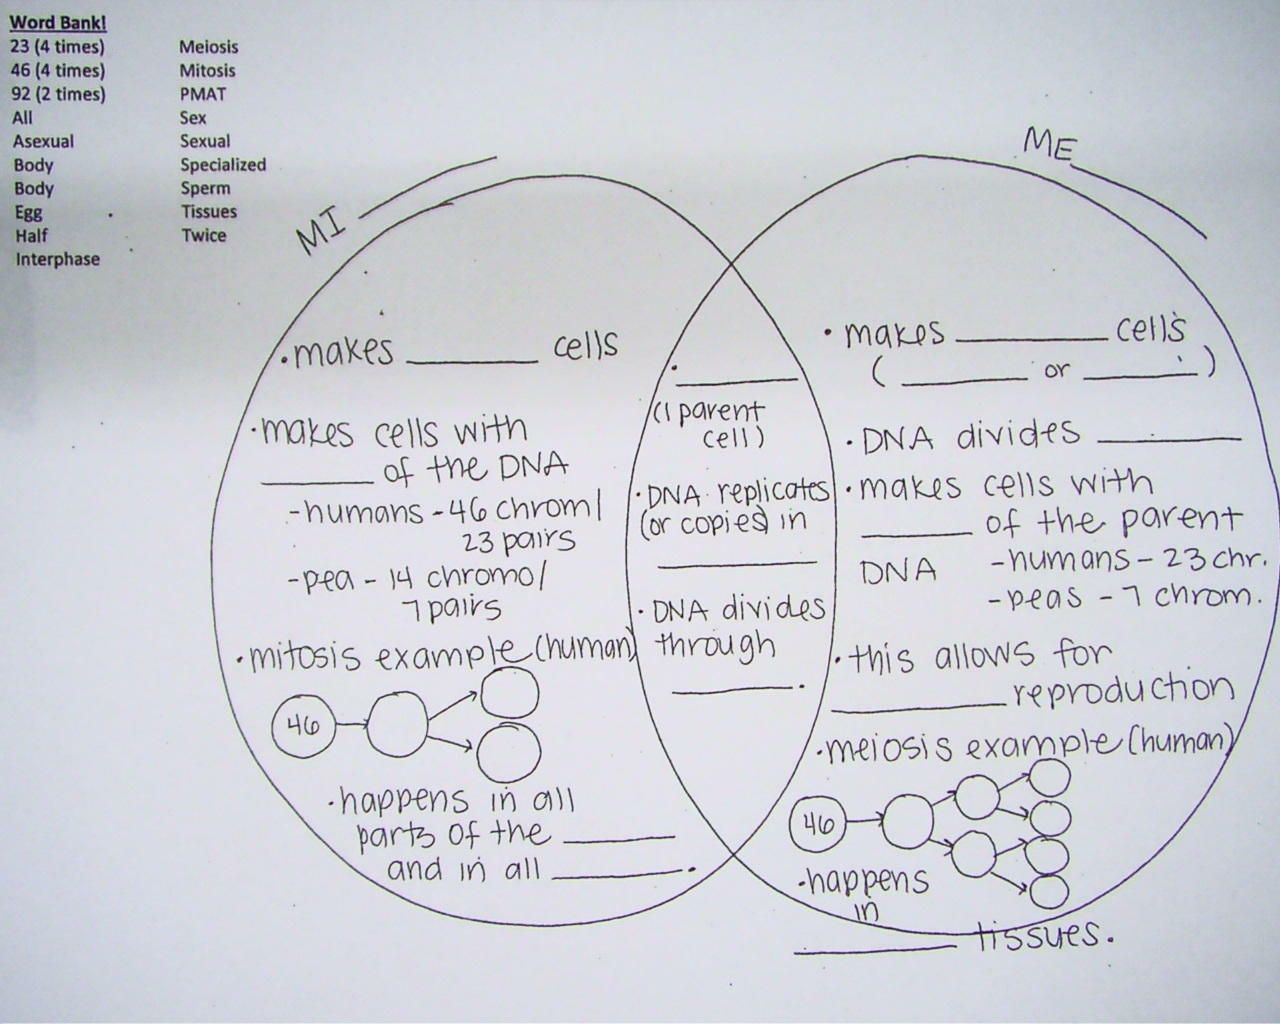 mitosis and meiosis Google Search School Biology